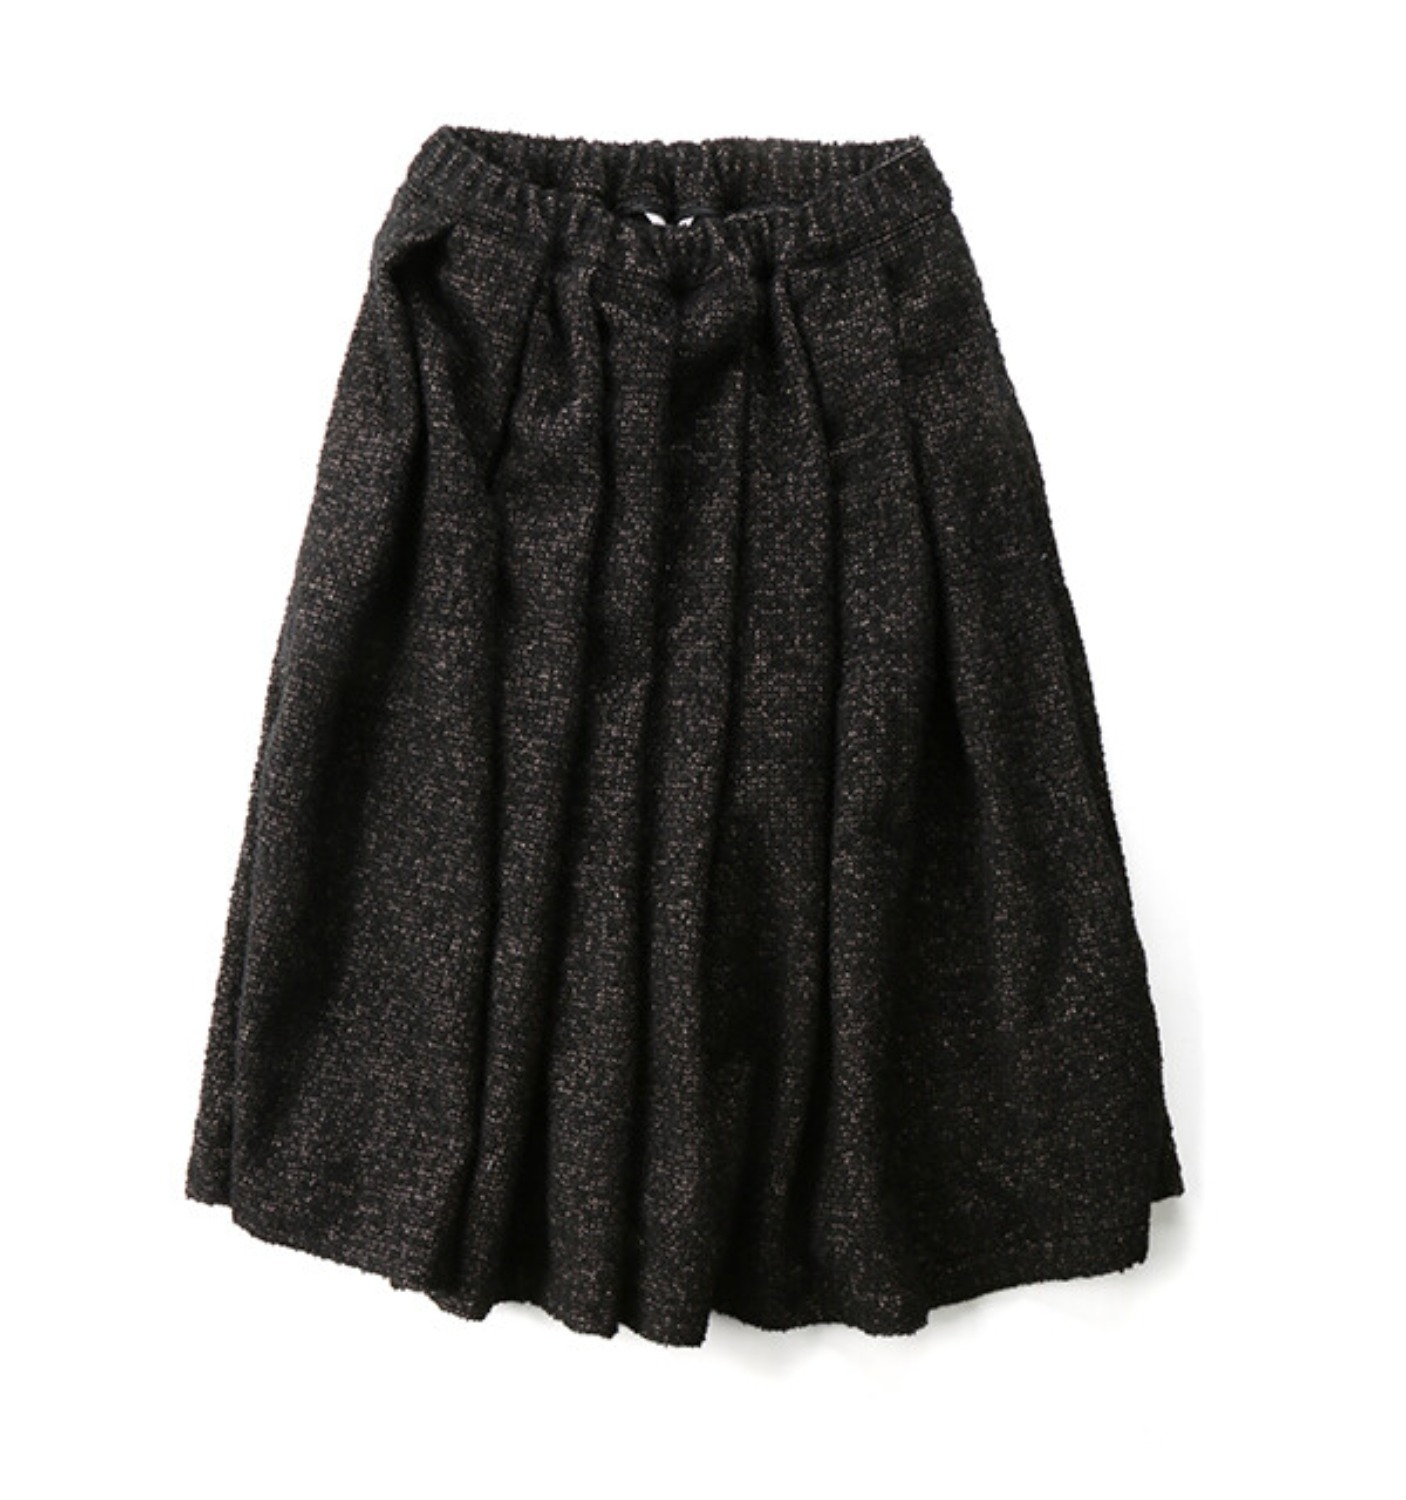 LAYLA A-LINE SKIRT BLACK TWEED (MDS07SK01)